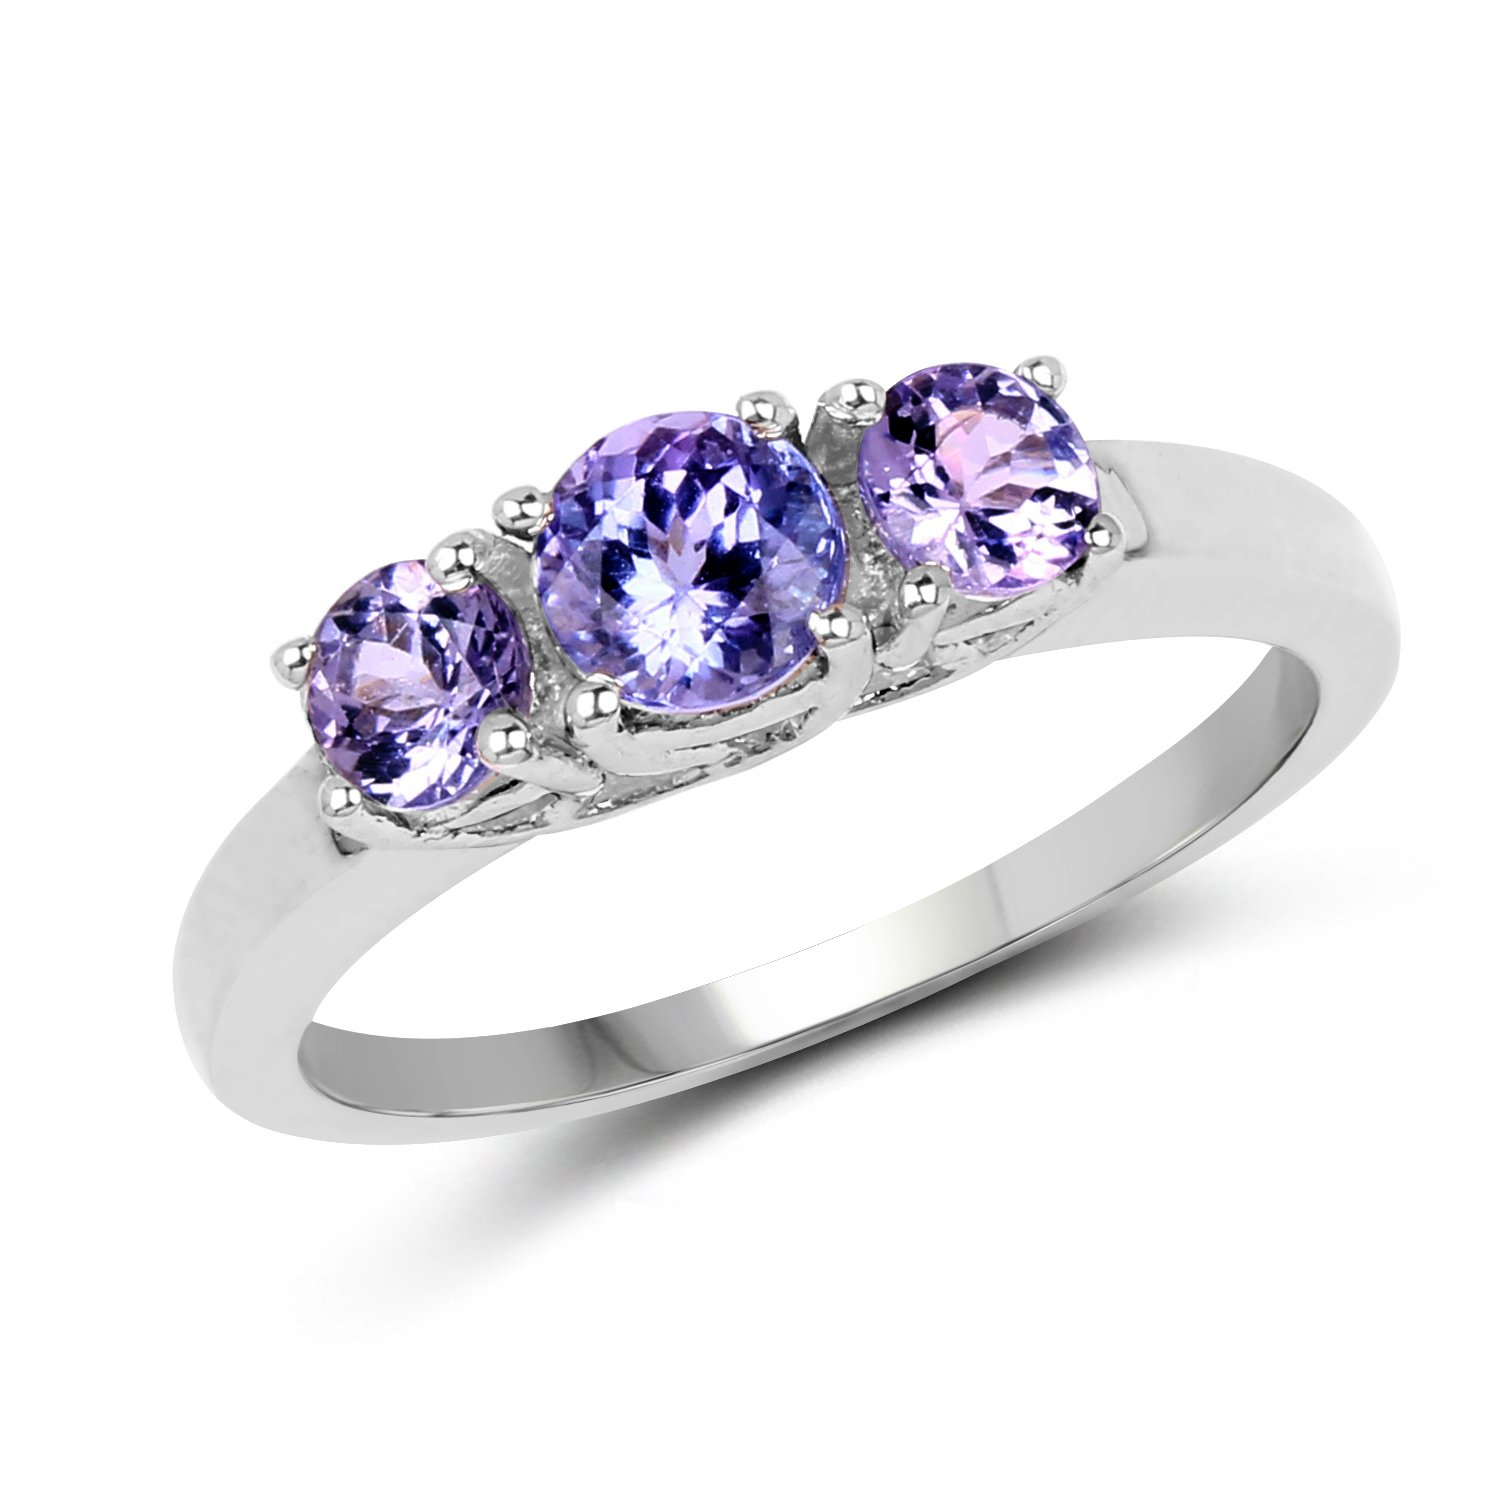 0.90 Carat Genuine Tanzanite .925 Sterling Silver 3-Stone Ring